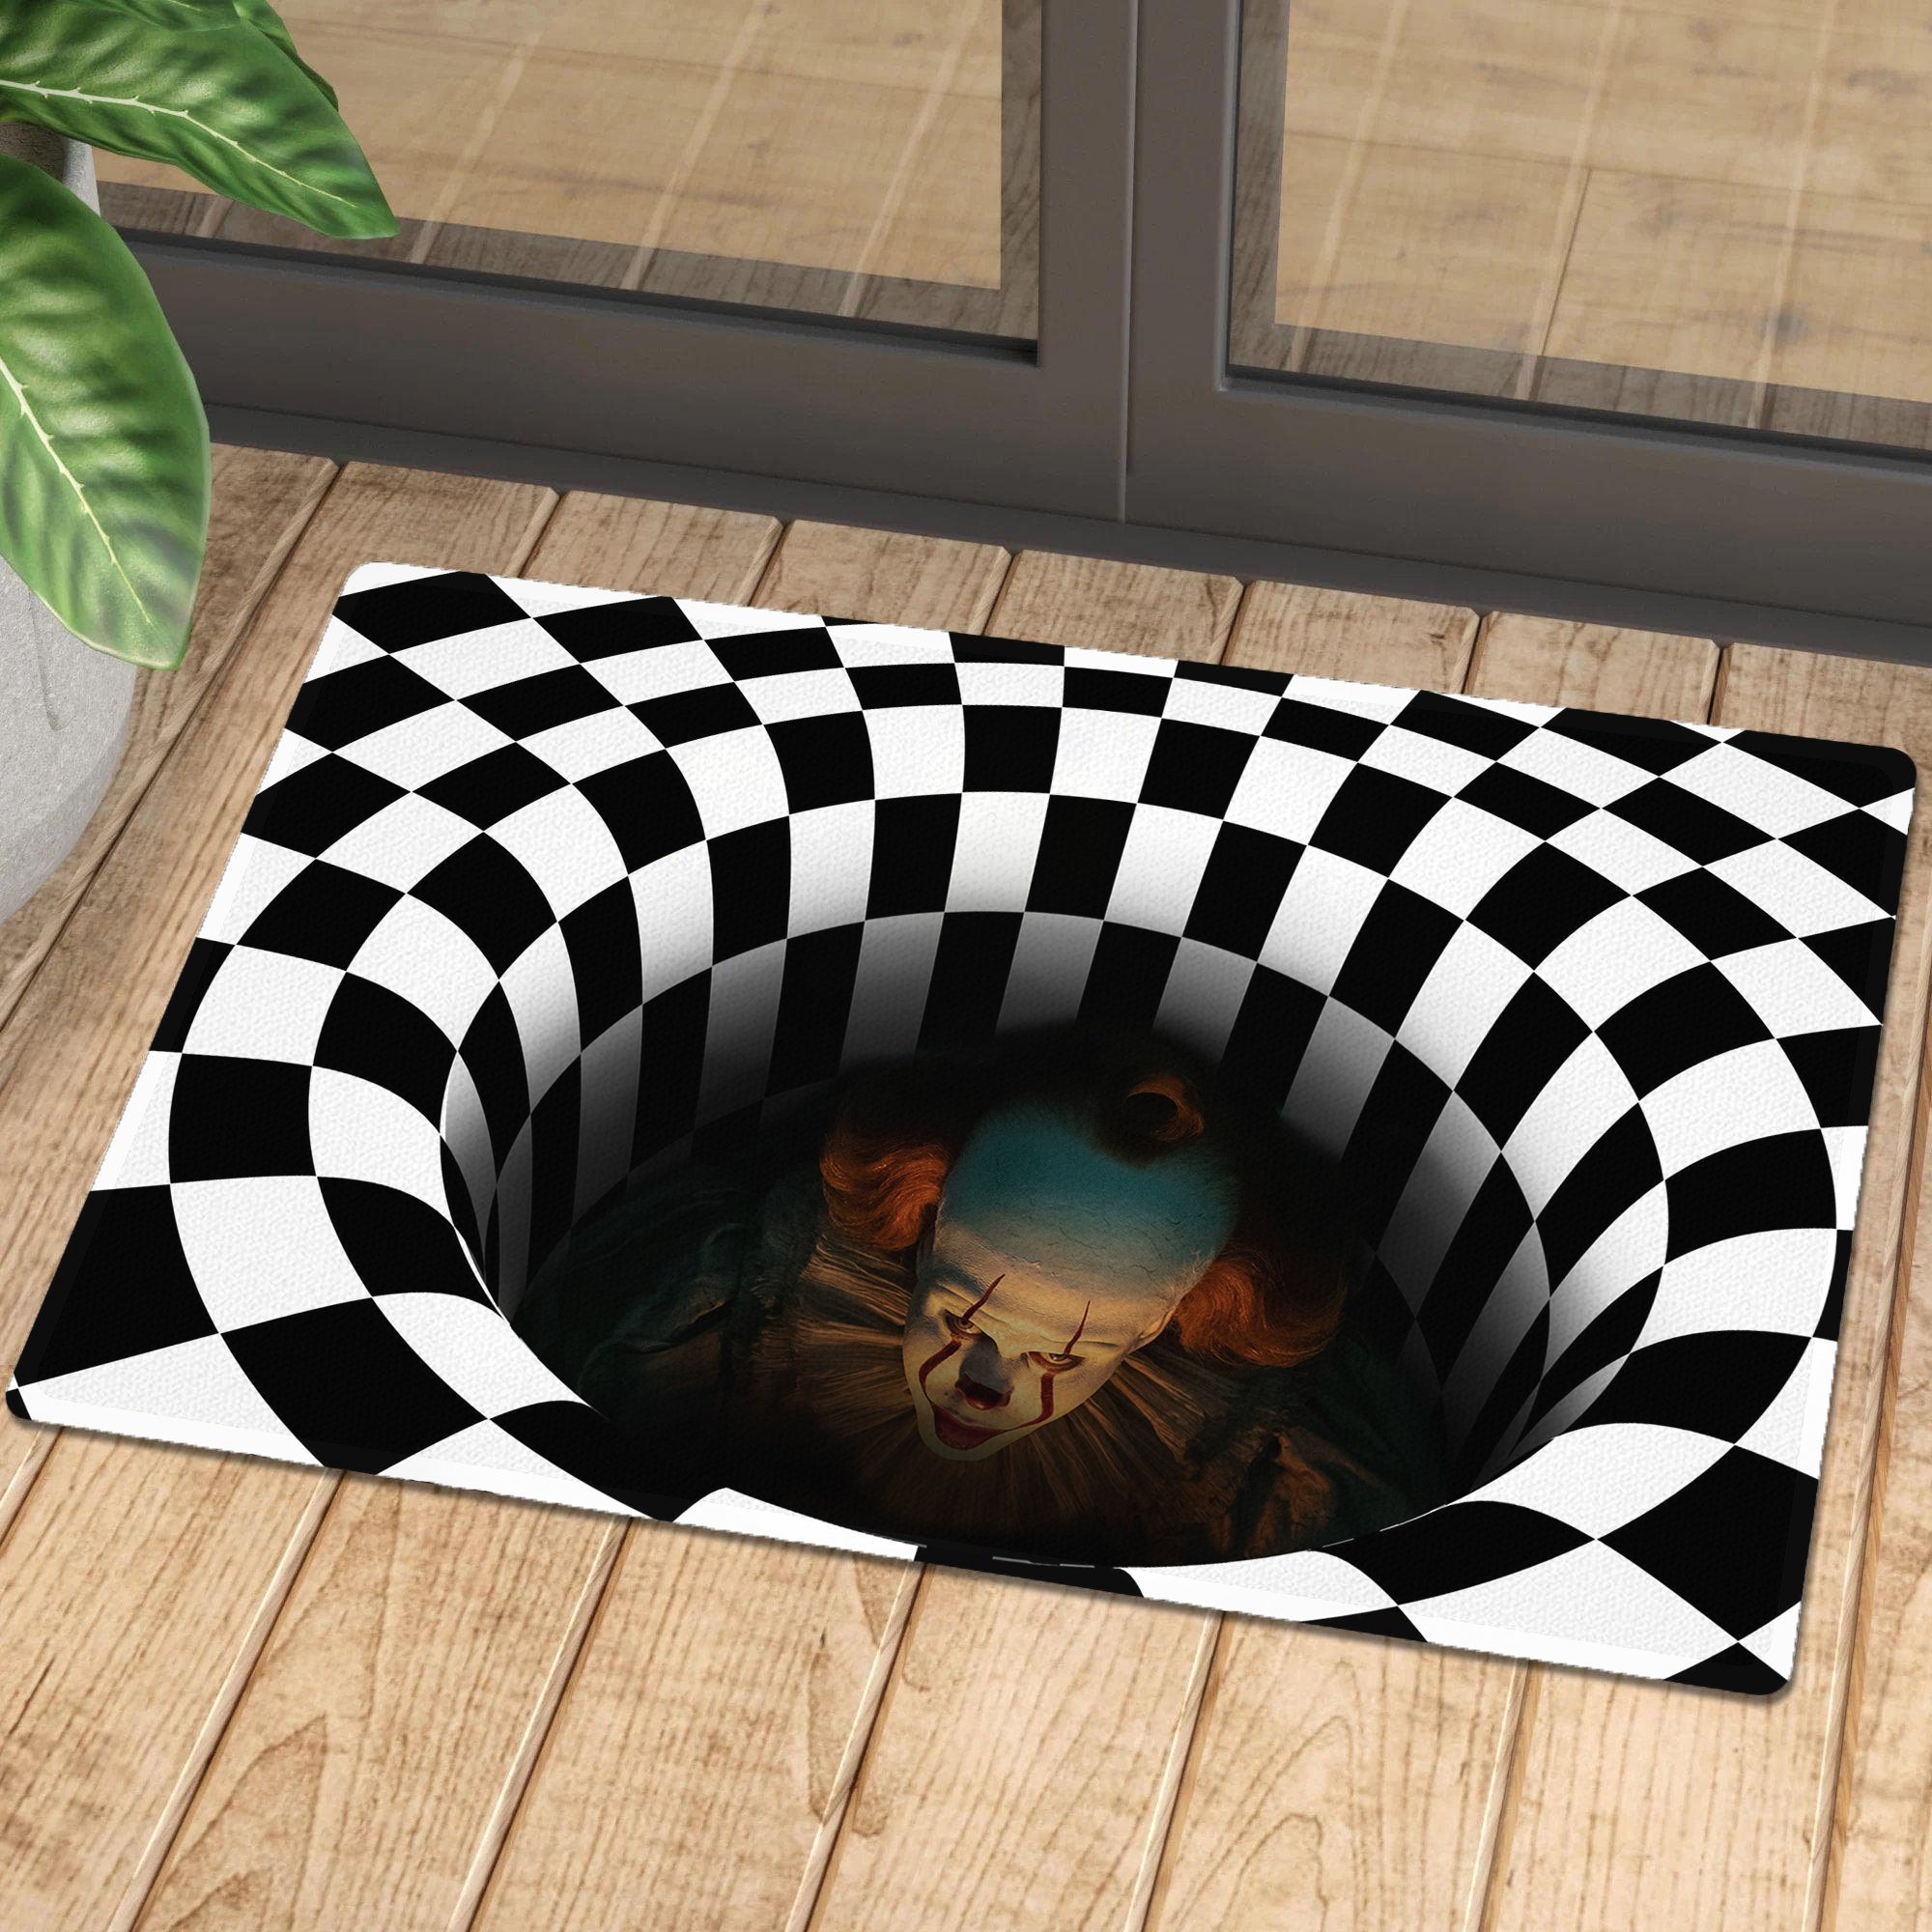 🔥ONLY $6.99 Second One🎃Halloween decoration Carpet IT Illusion Doormat🎃